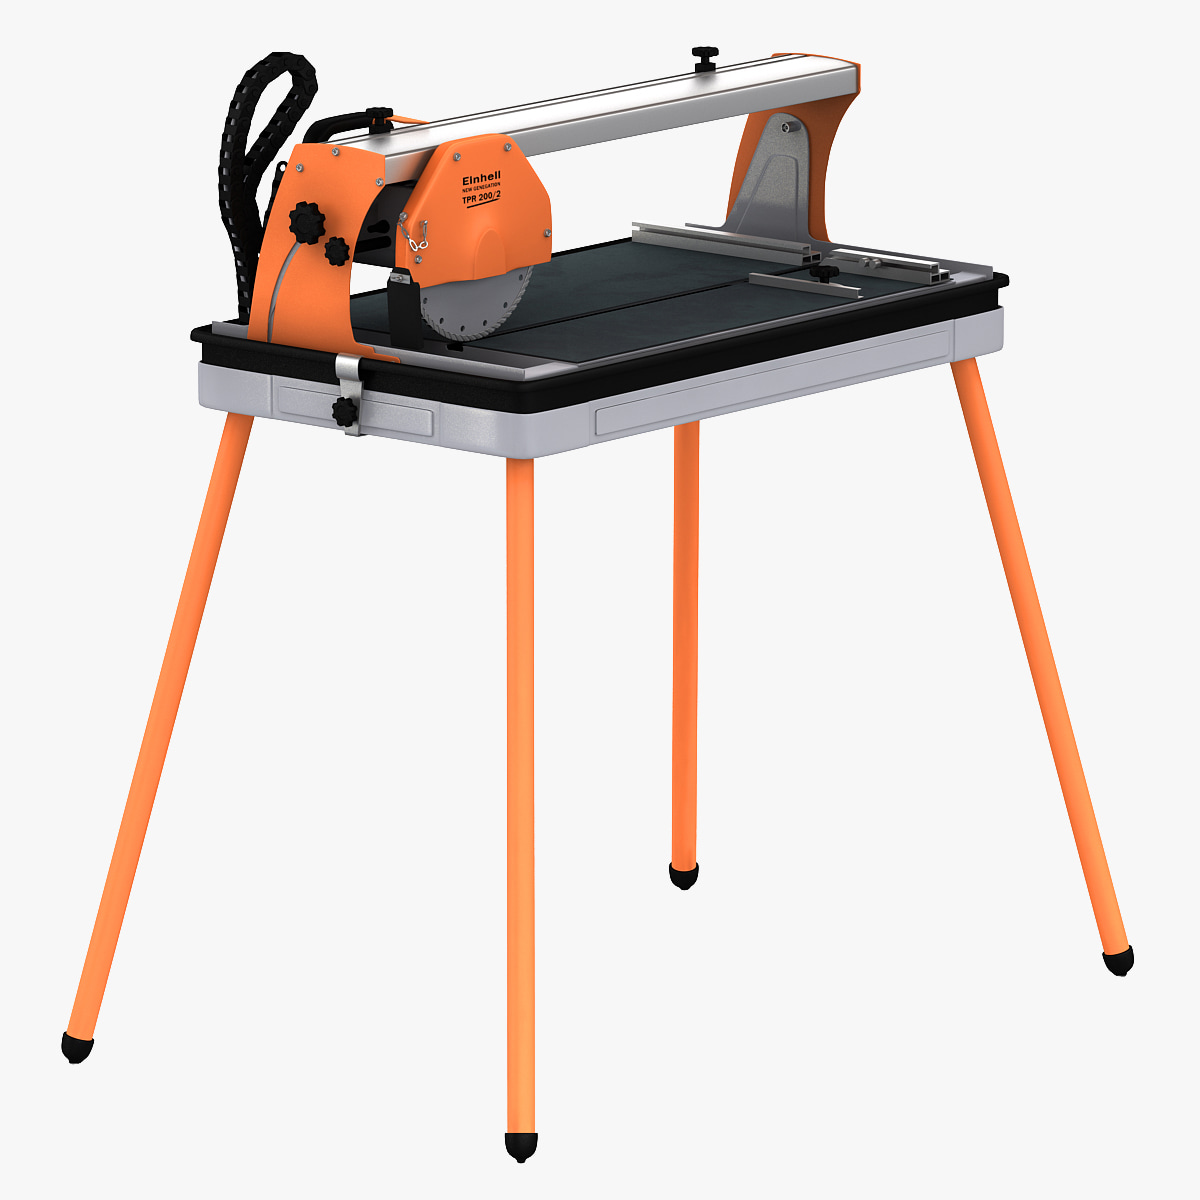 Electric_Tile_Cutter_000.jpg